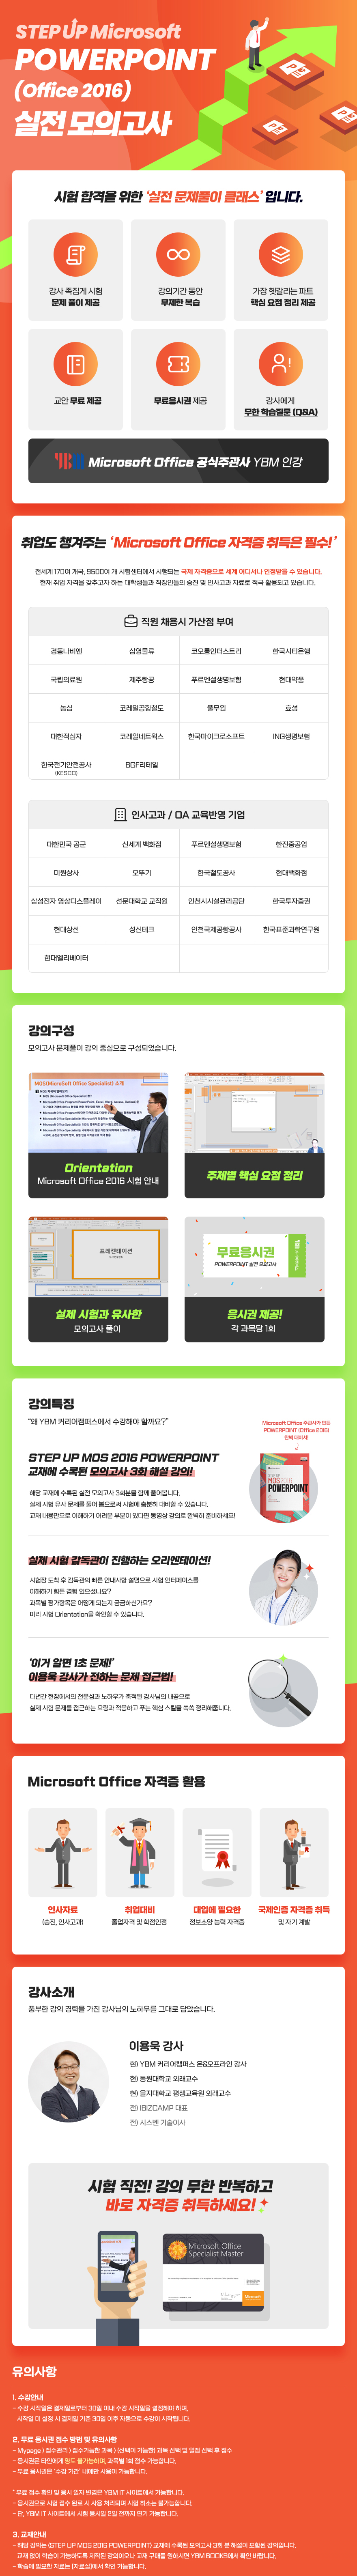 STEP UP Microsoft PowerPoint (Office 2016) 실전 모의고사